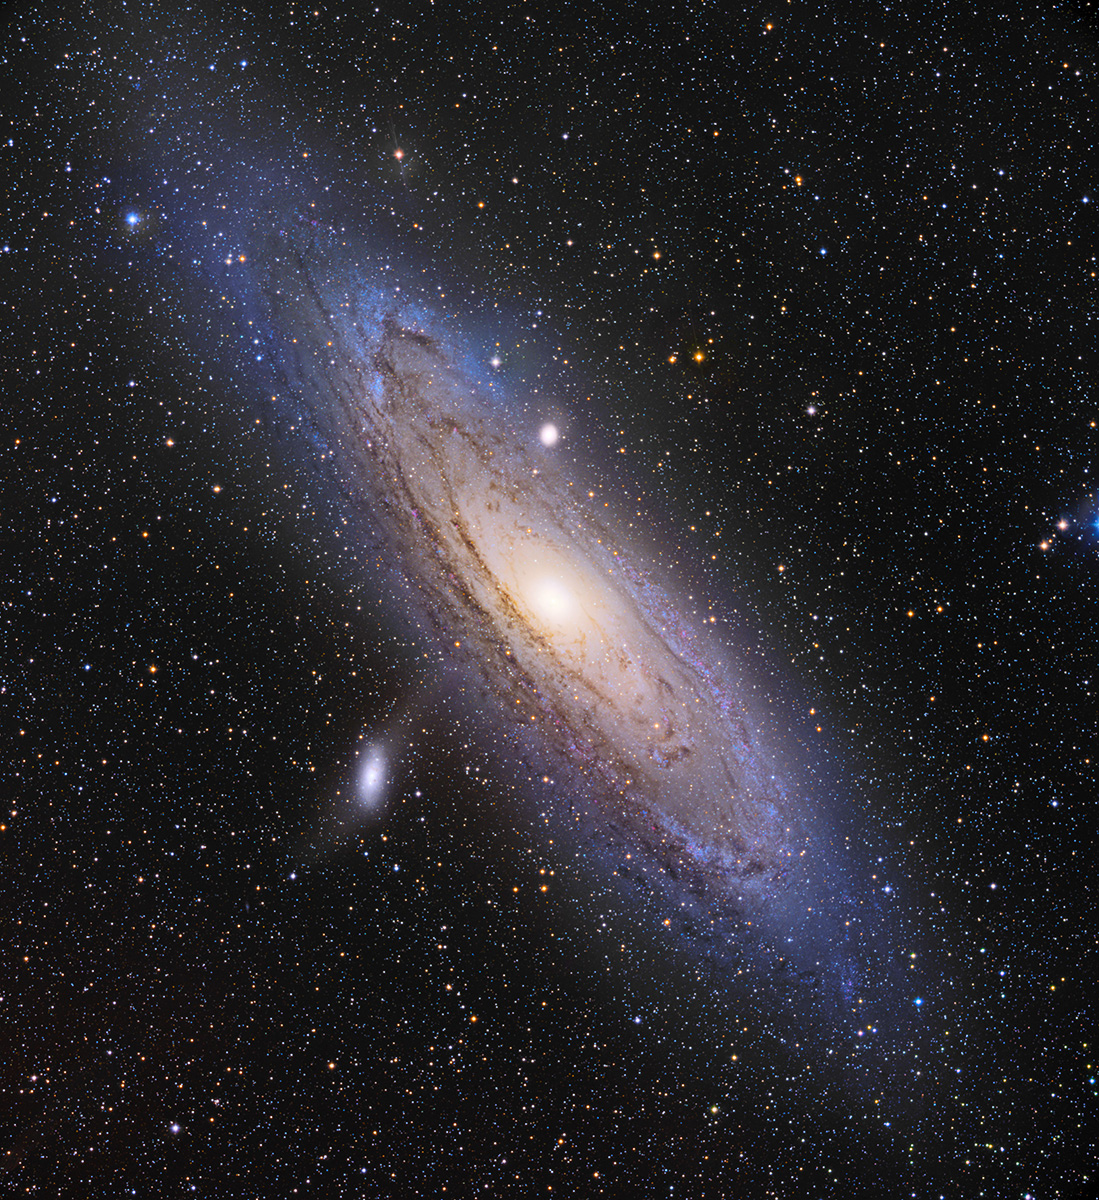 M31: The Andromeda Galaxy: Our Neighbor